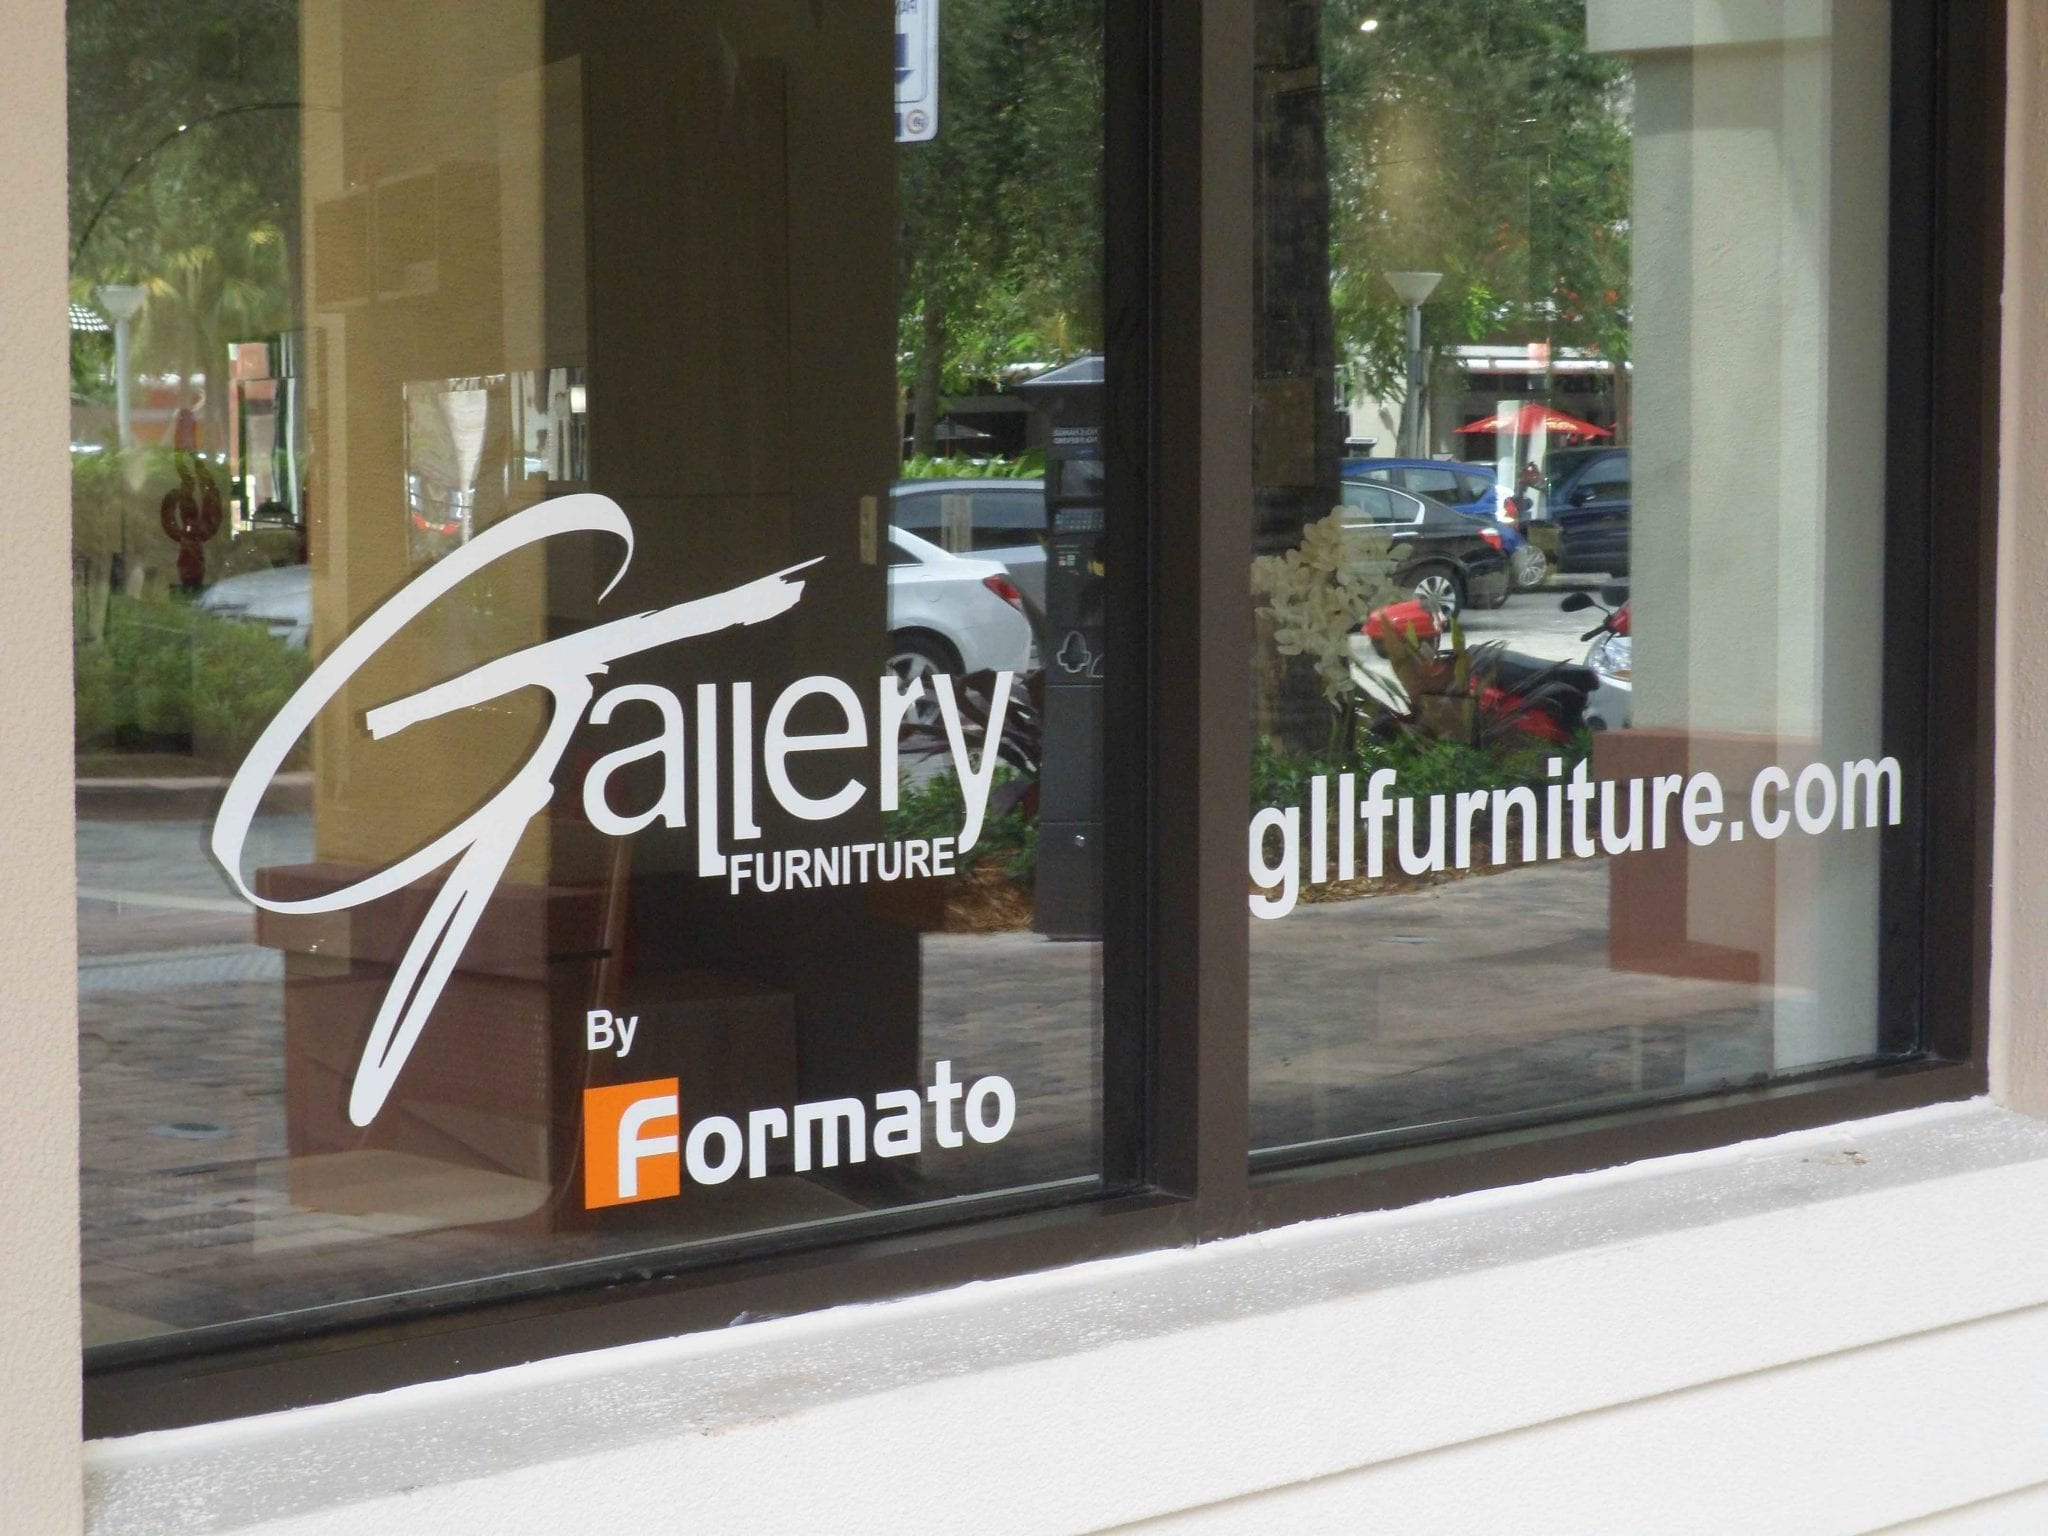 GLLFURNITURE.COM